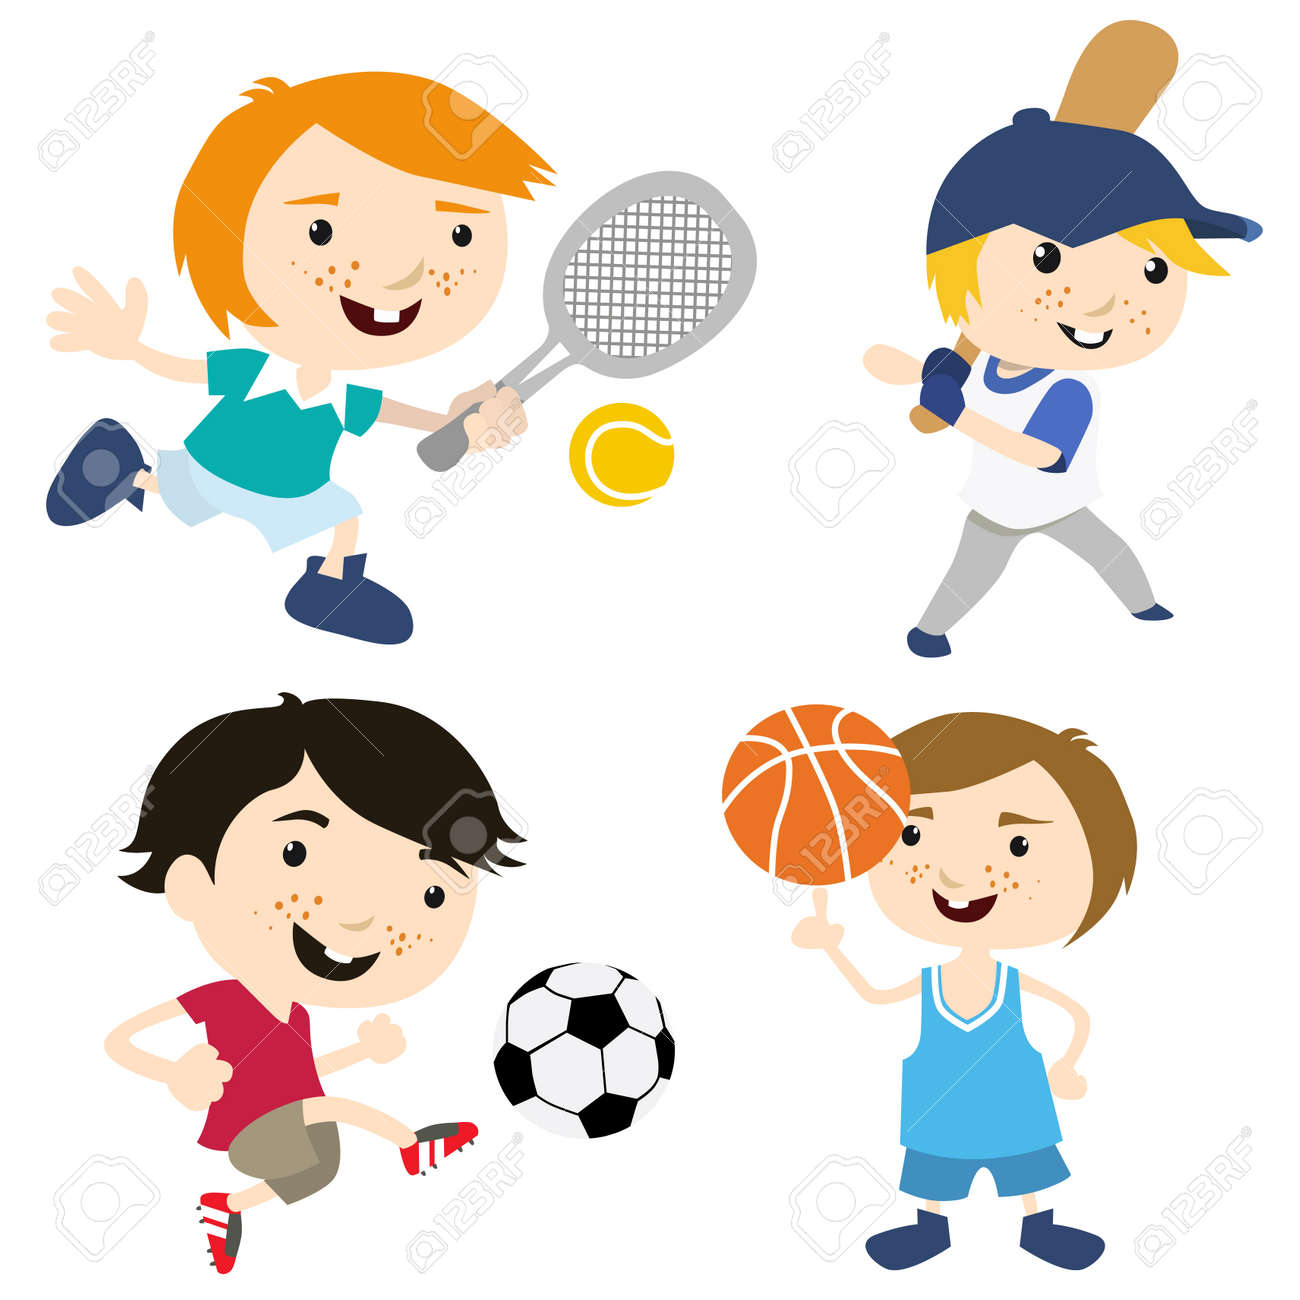 Cartoon Sport Kids Royalty Free Cliparts, Vectors, And Stock ...